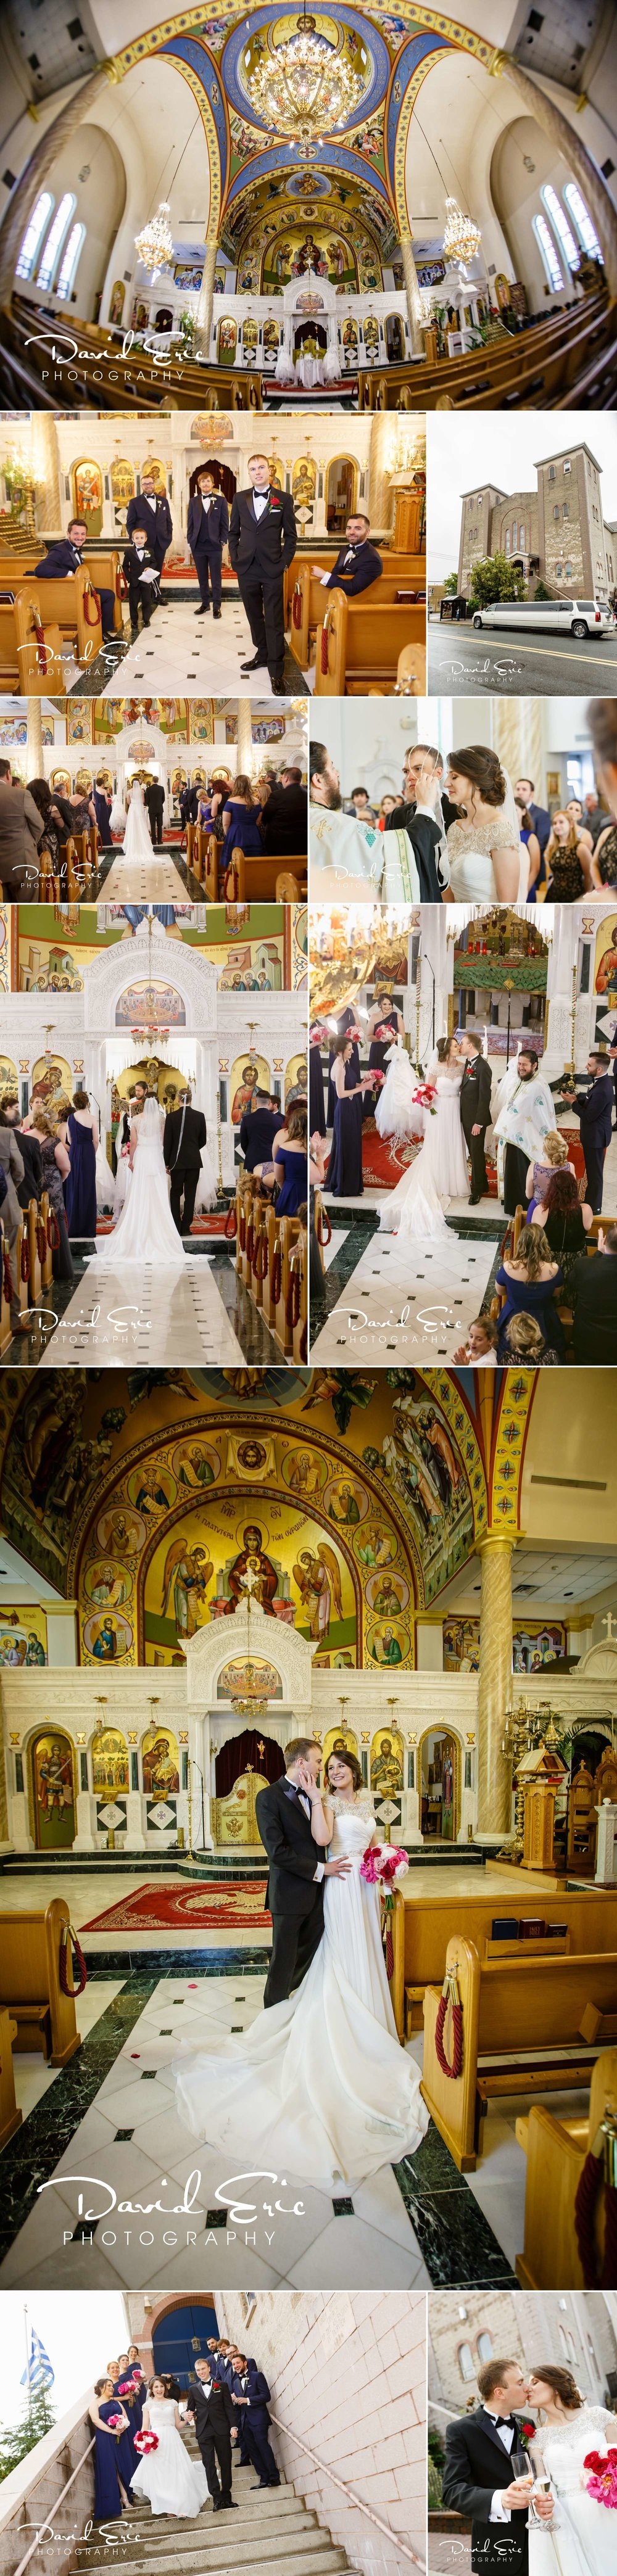 Their wedding took place at Ascension Greek Orthodox Church 101 Anderson Ave, Fairview, NJ 07022